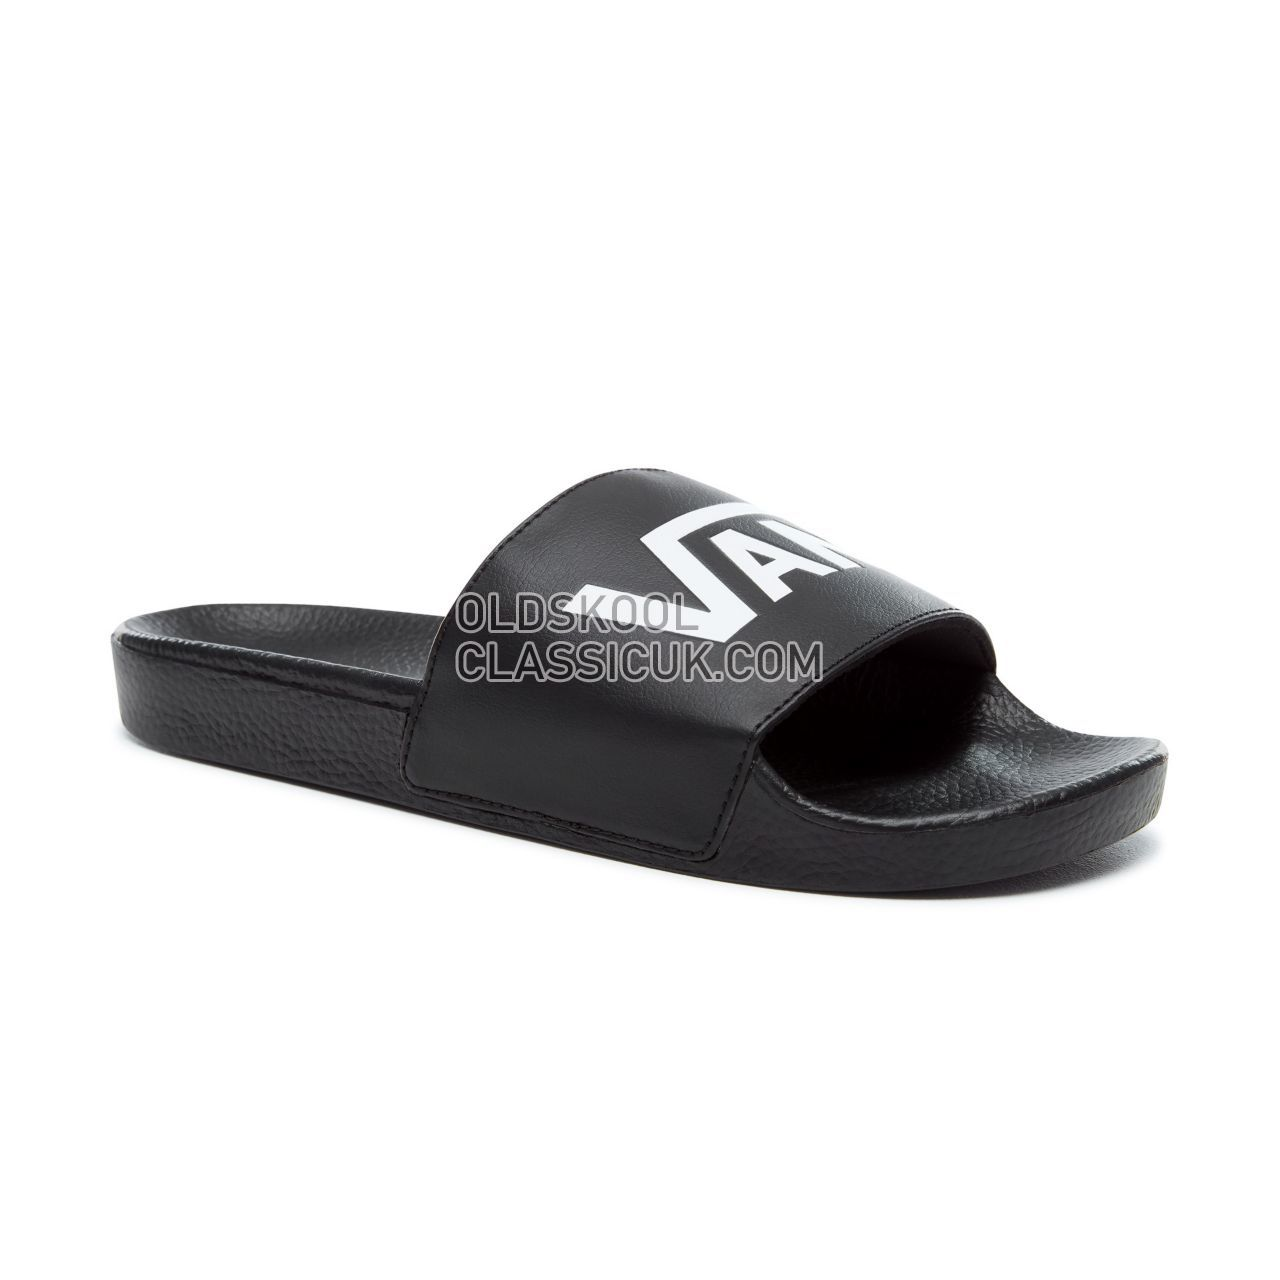 Vans Slide-On Sandals Mens Black VN0004KIIX6 Shoes